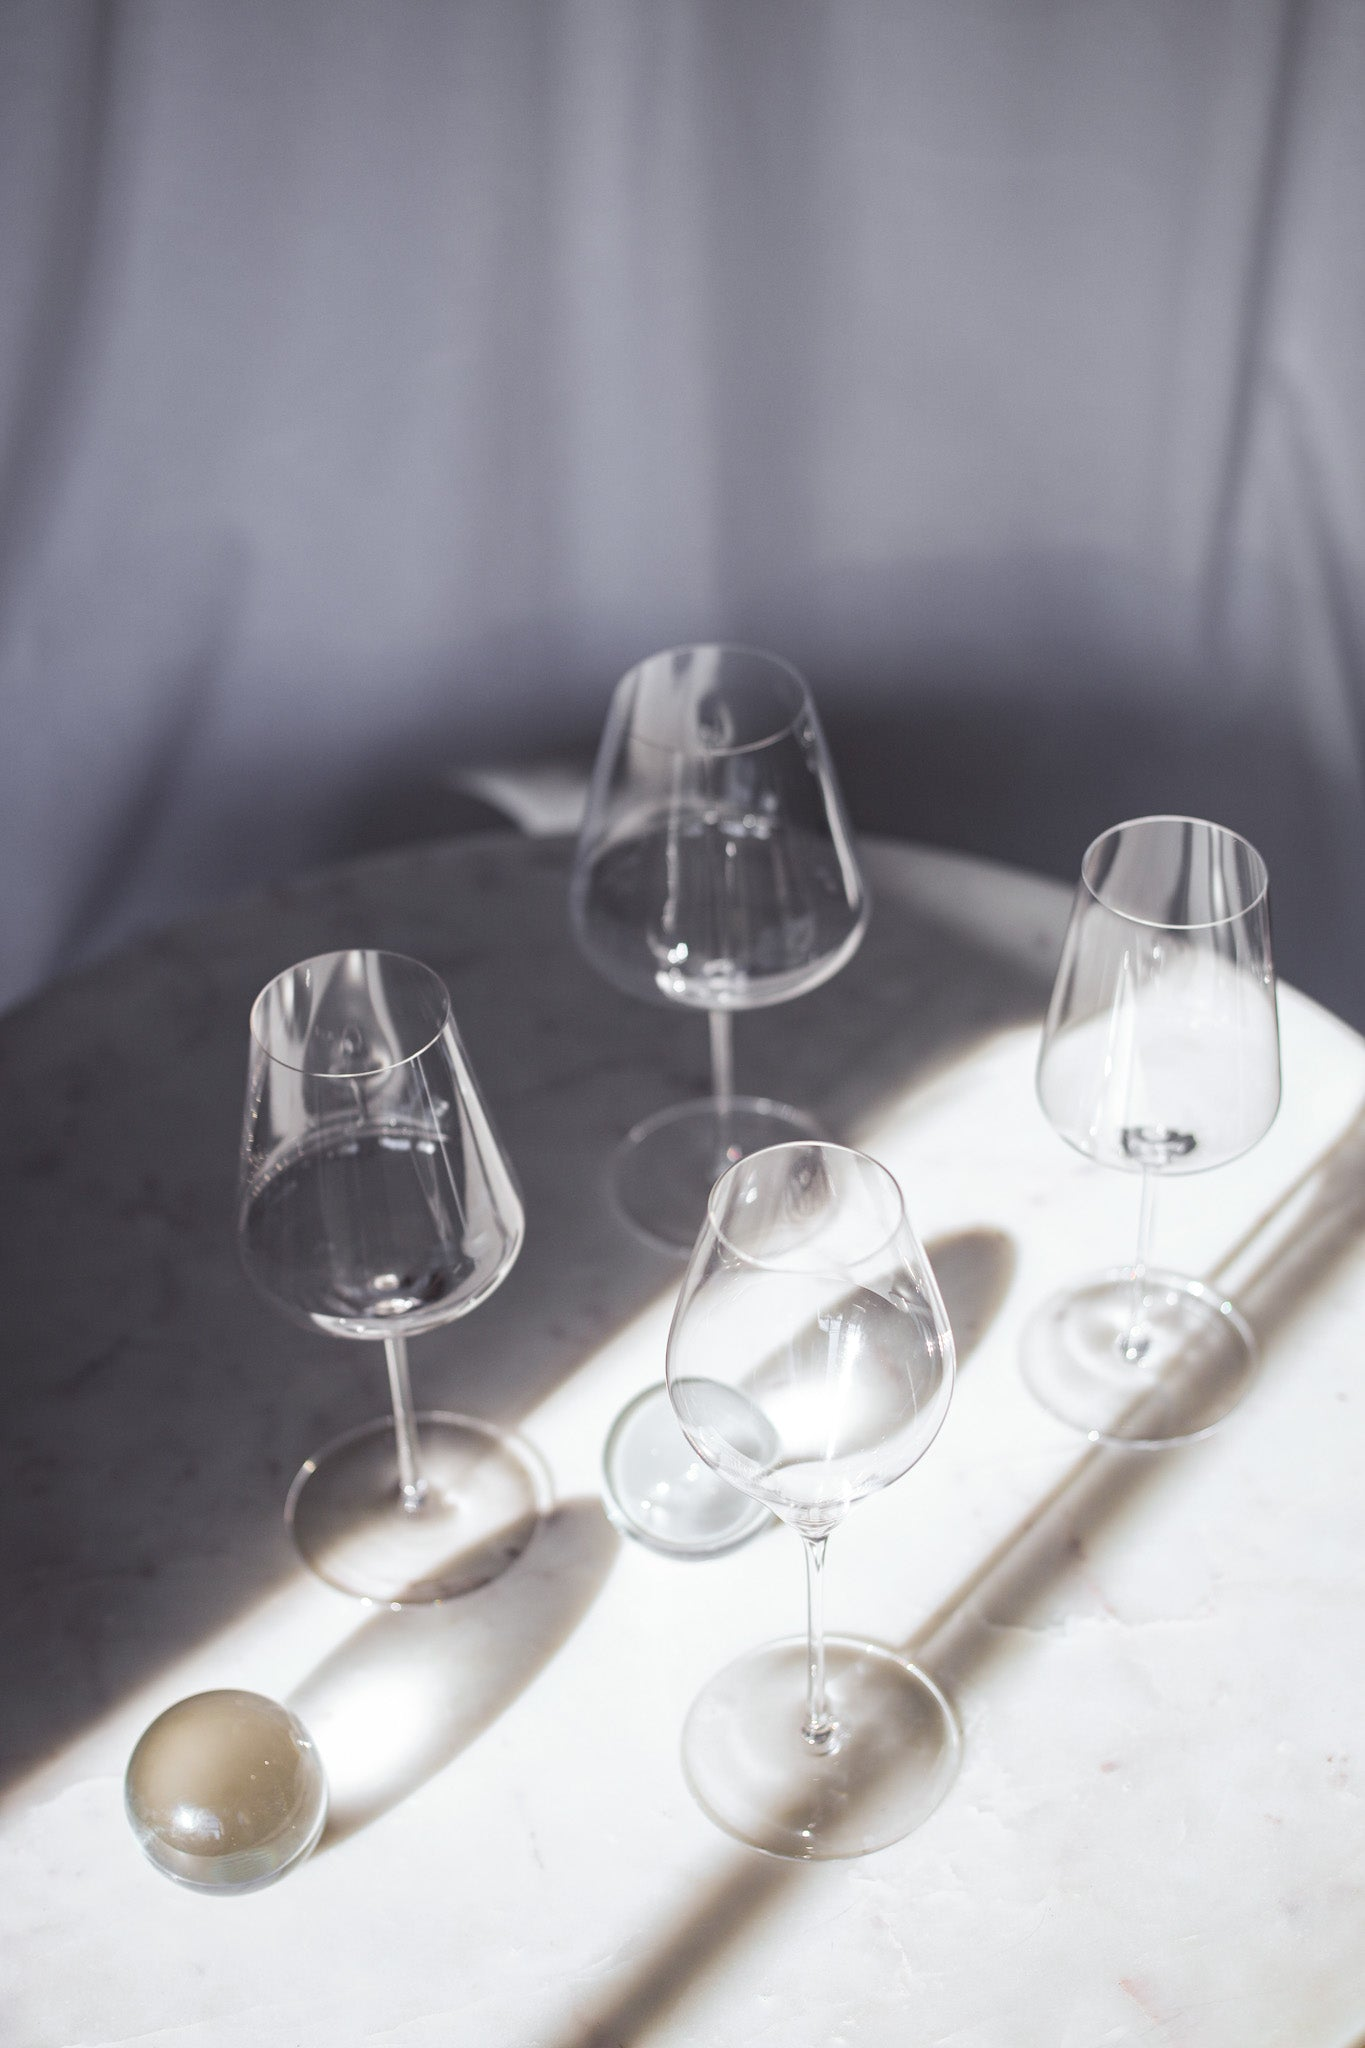 Four empyty wine glasses